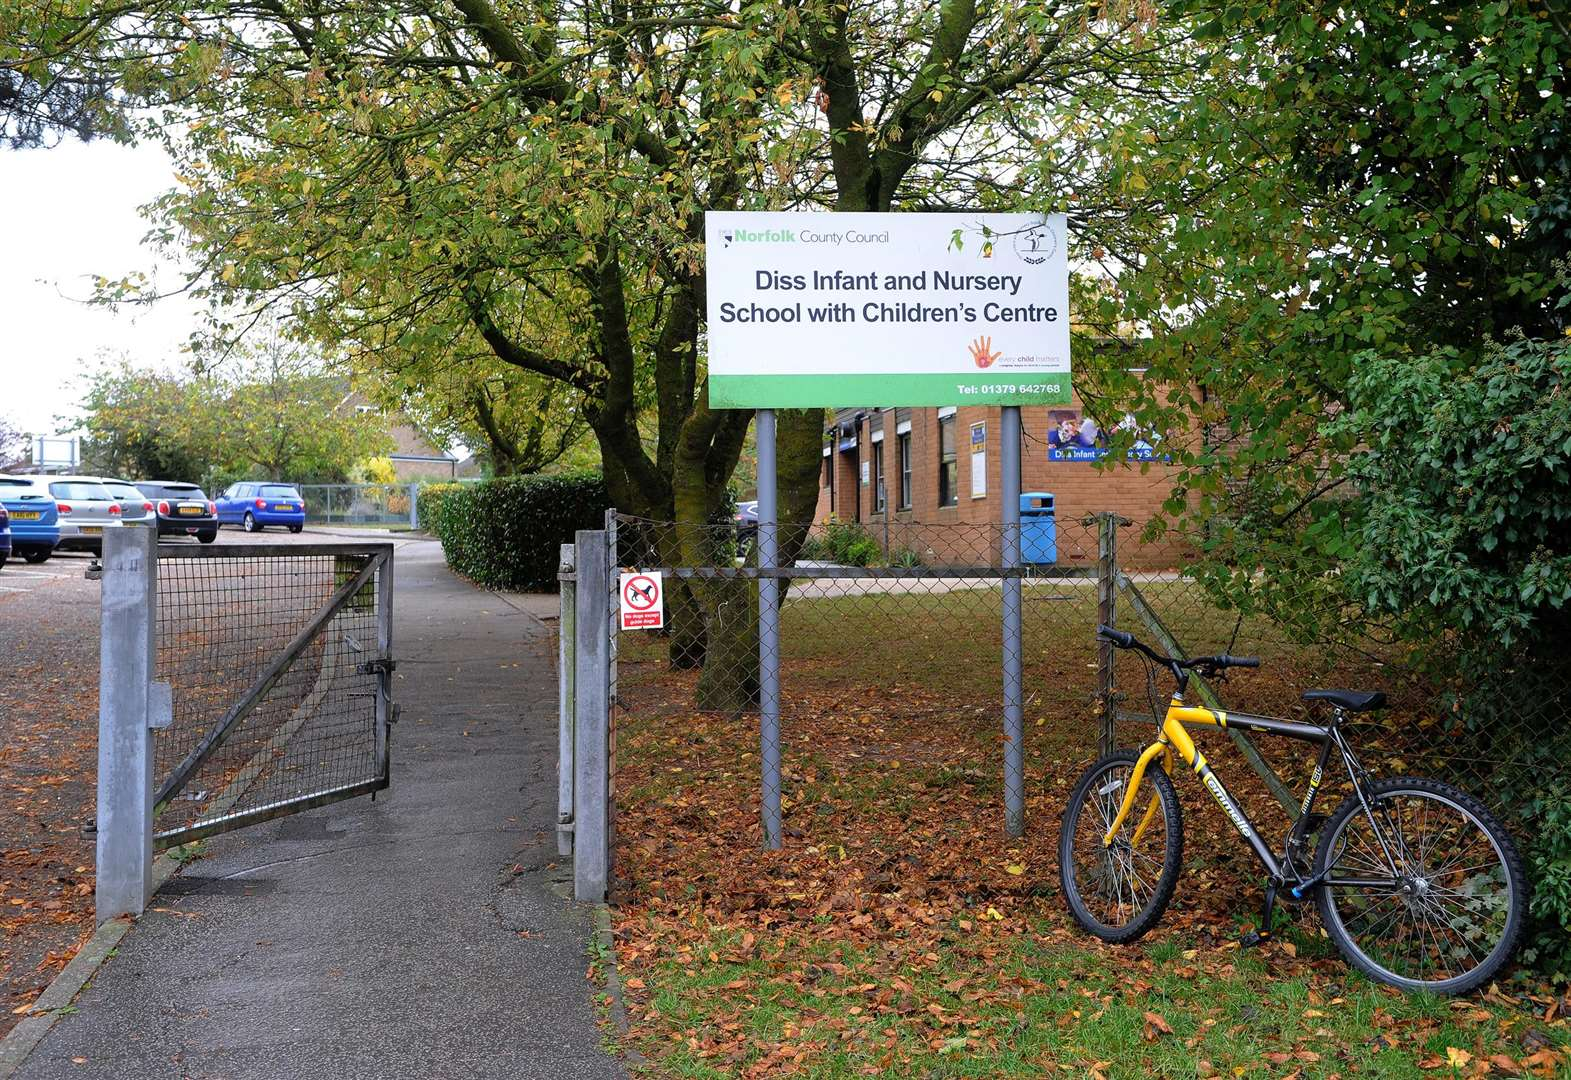 BREAKING: Diss Children's Centre has been saved